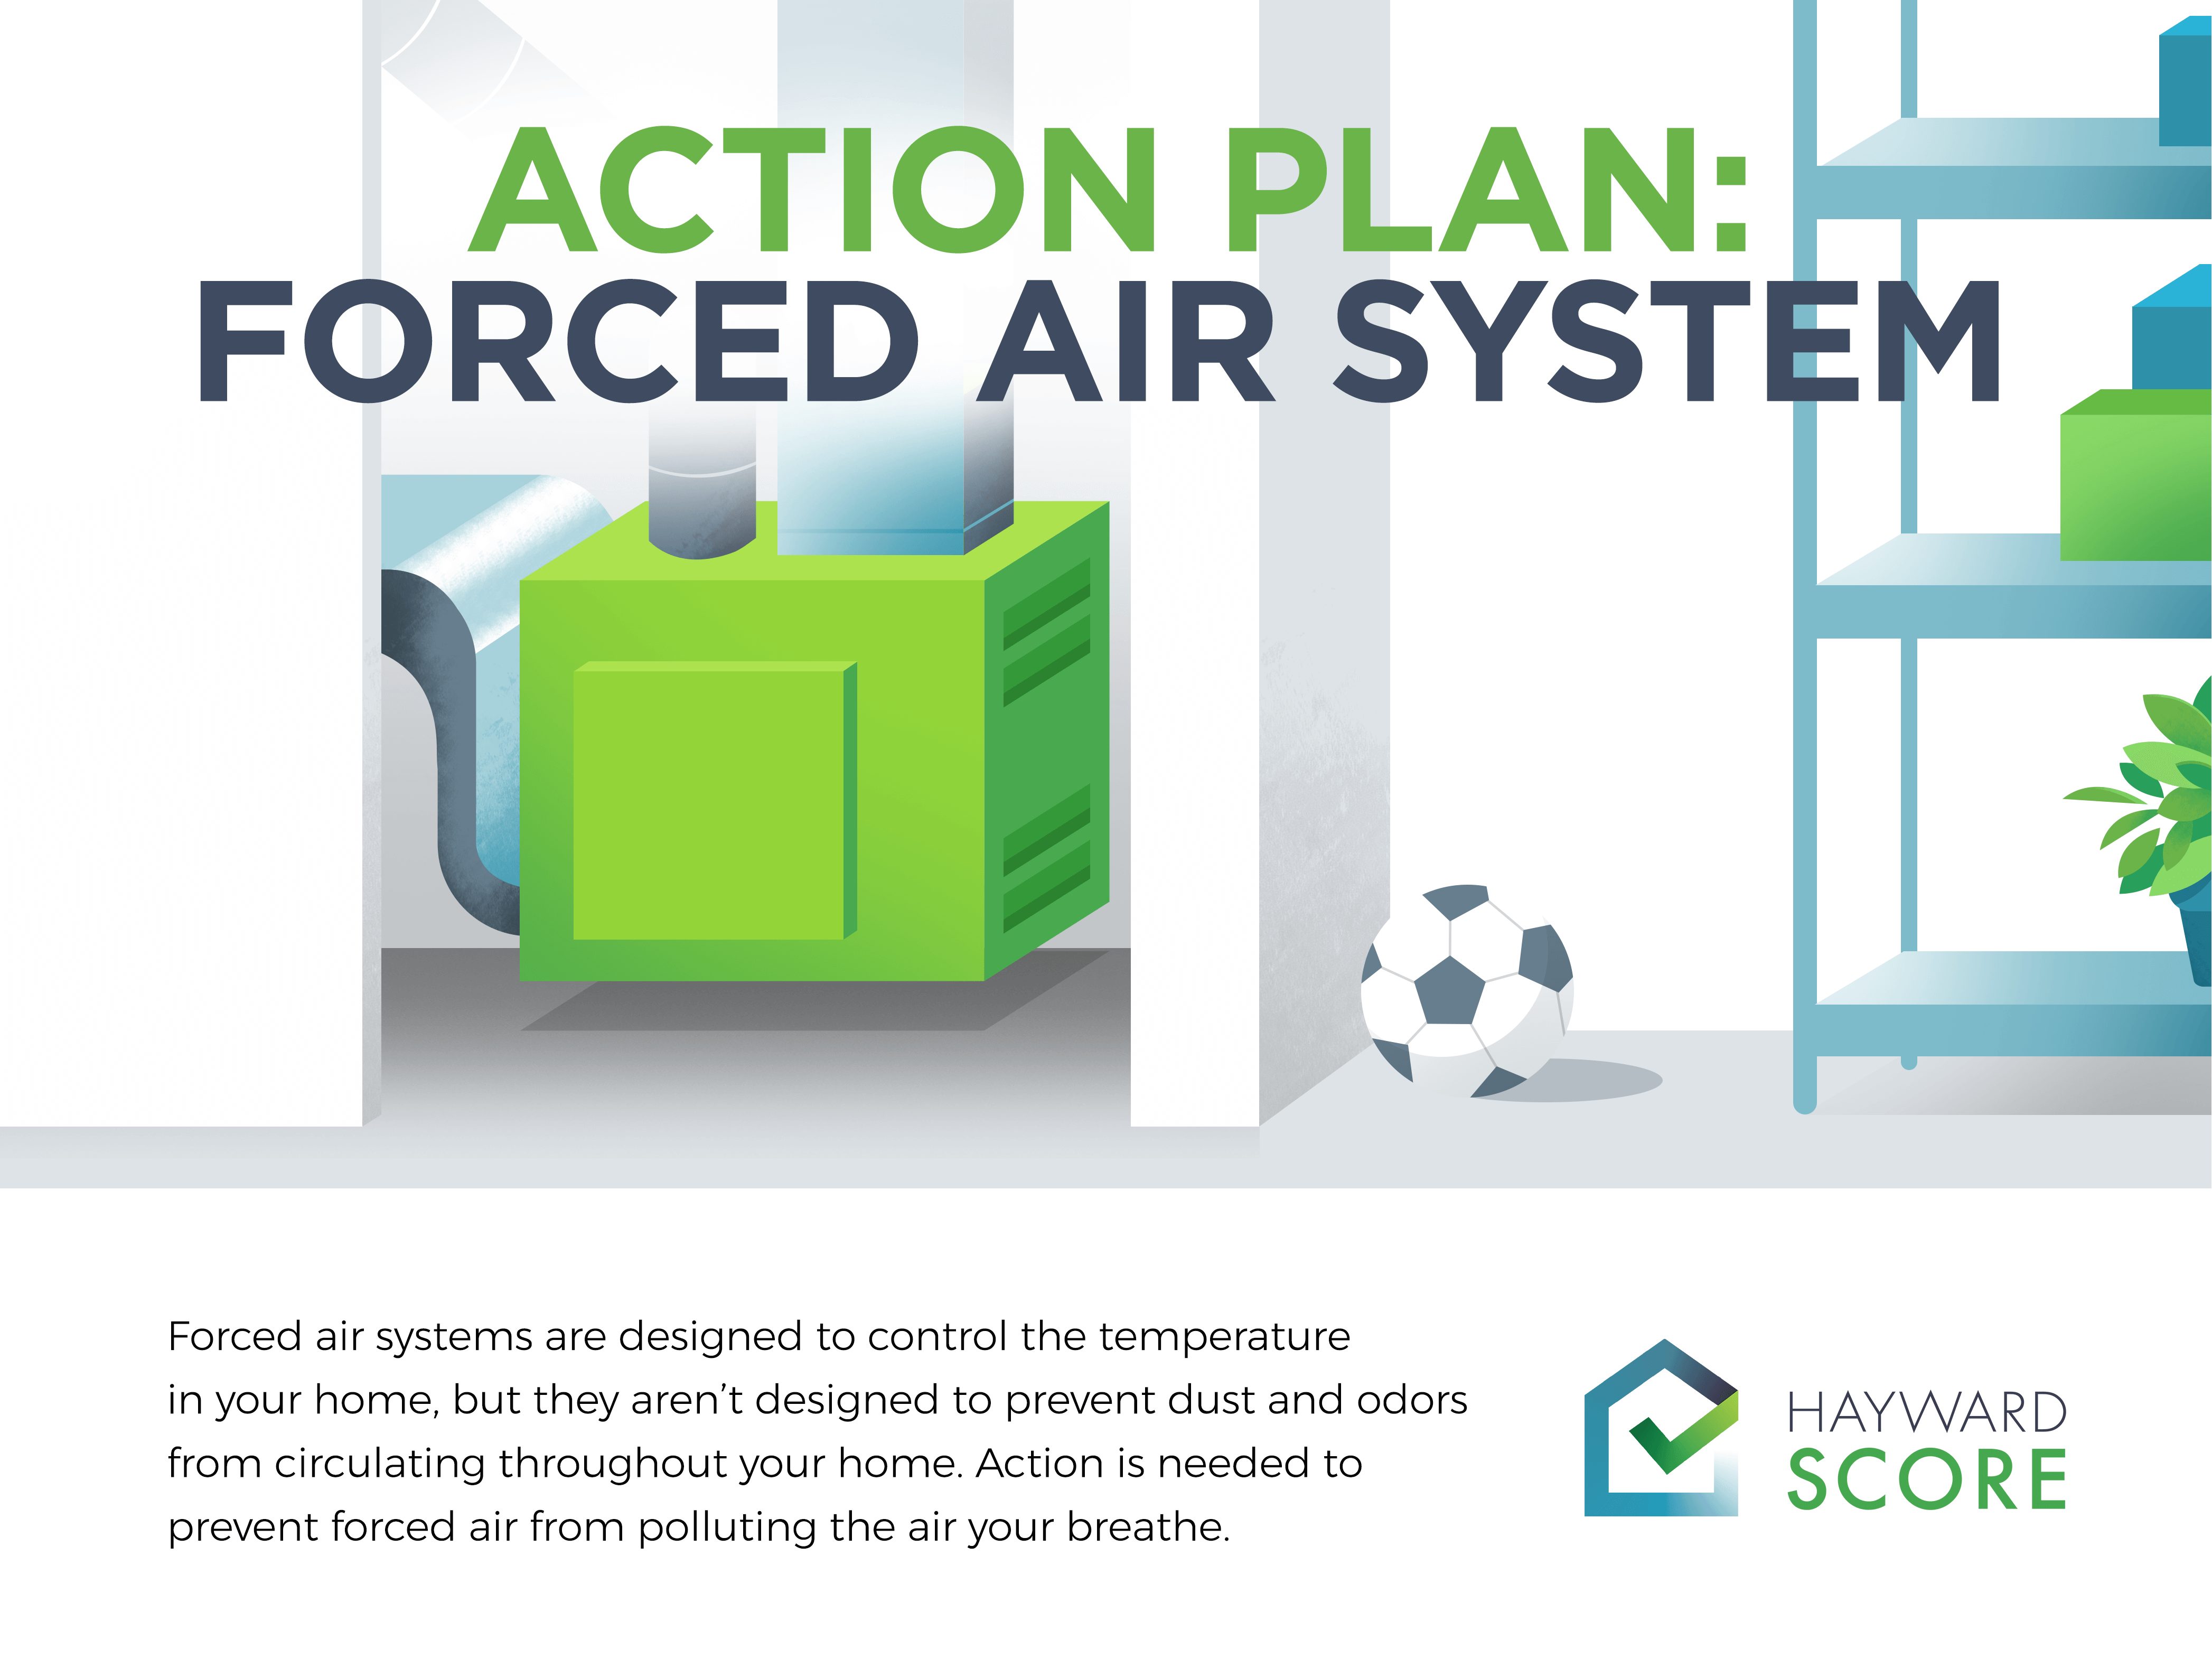 Action Plan: Forced Air System